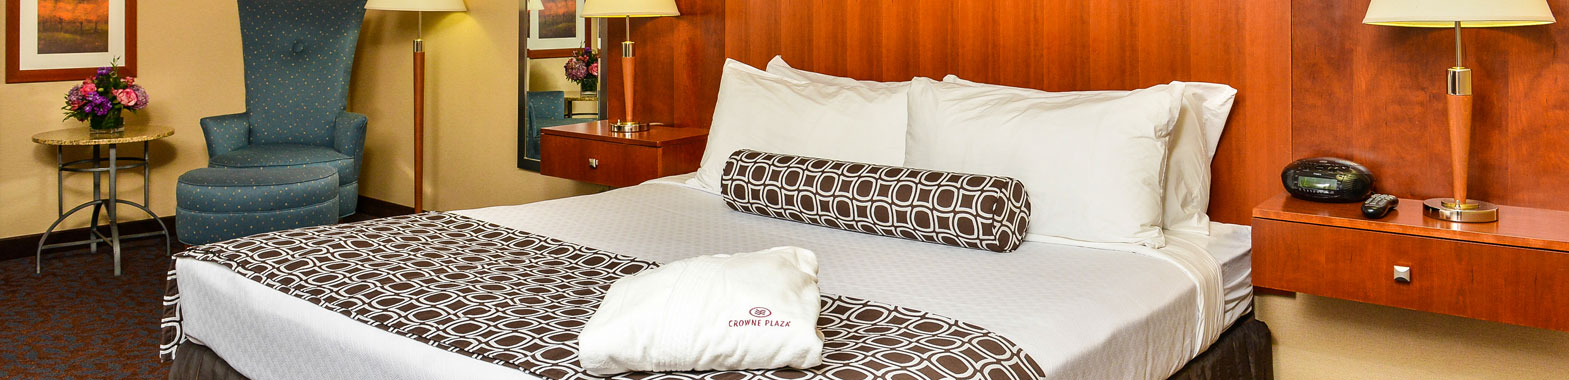 Crowne Plaza Dulles Airport Hotel Specials and Packages